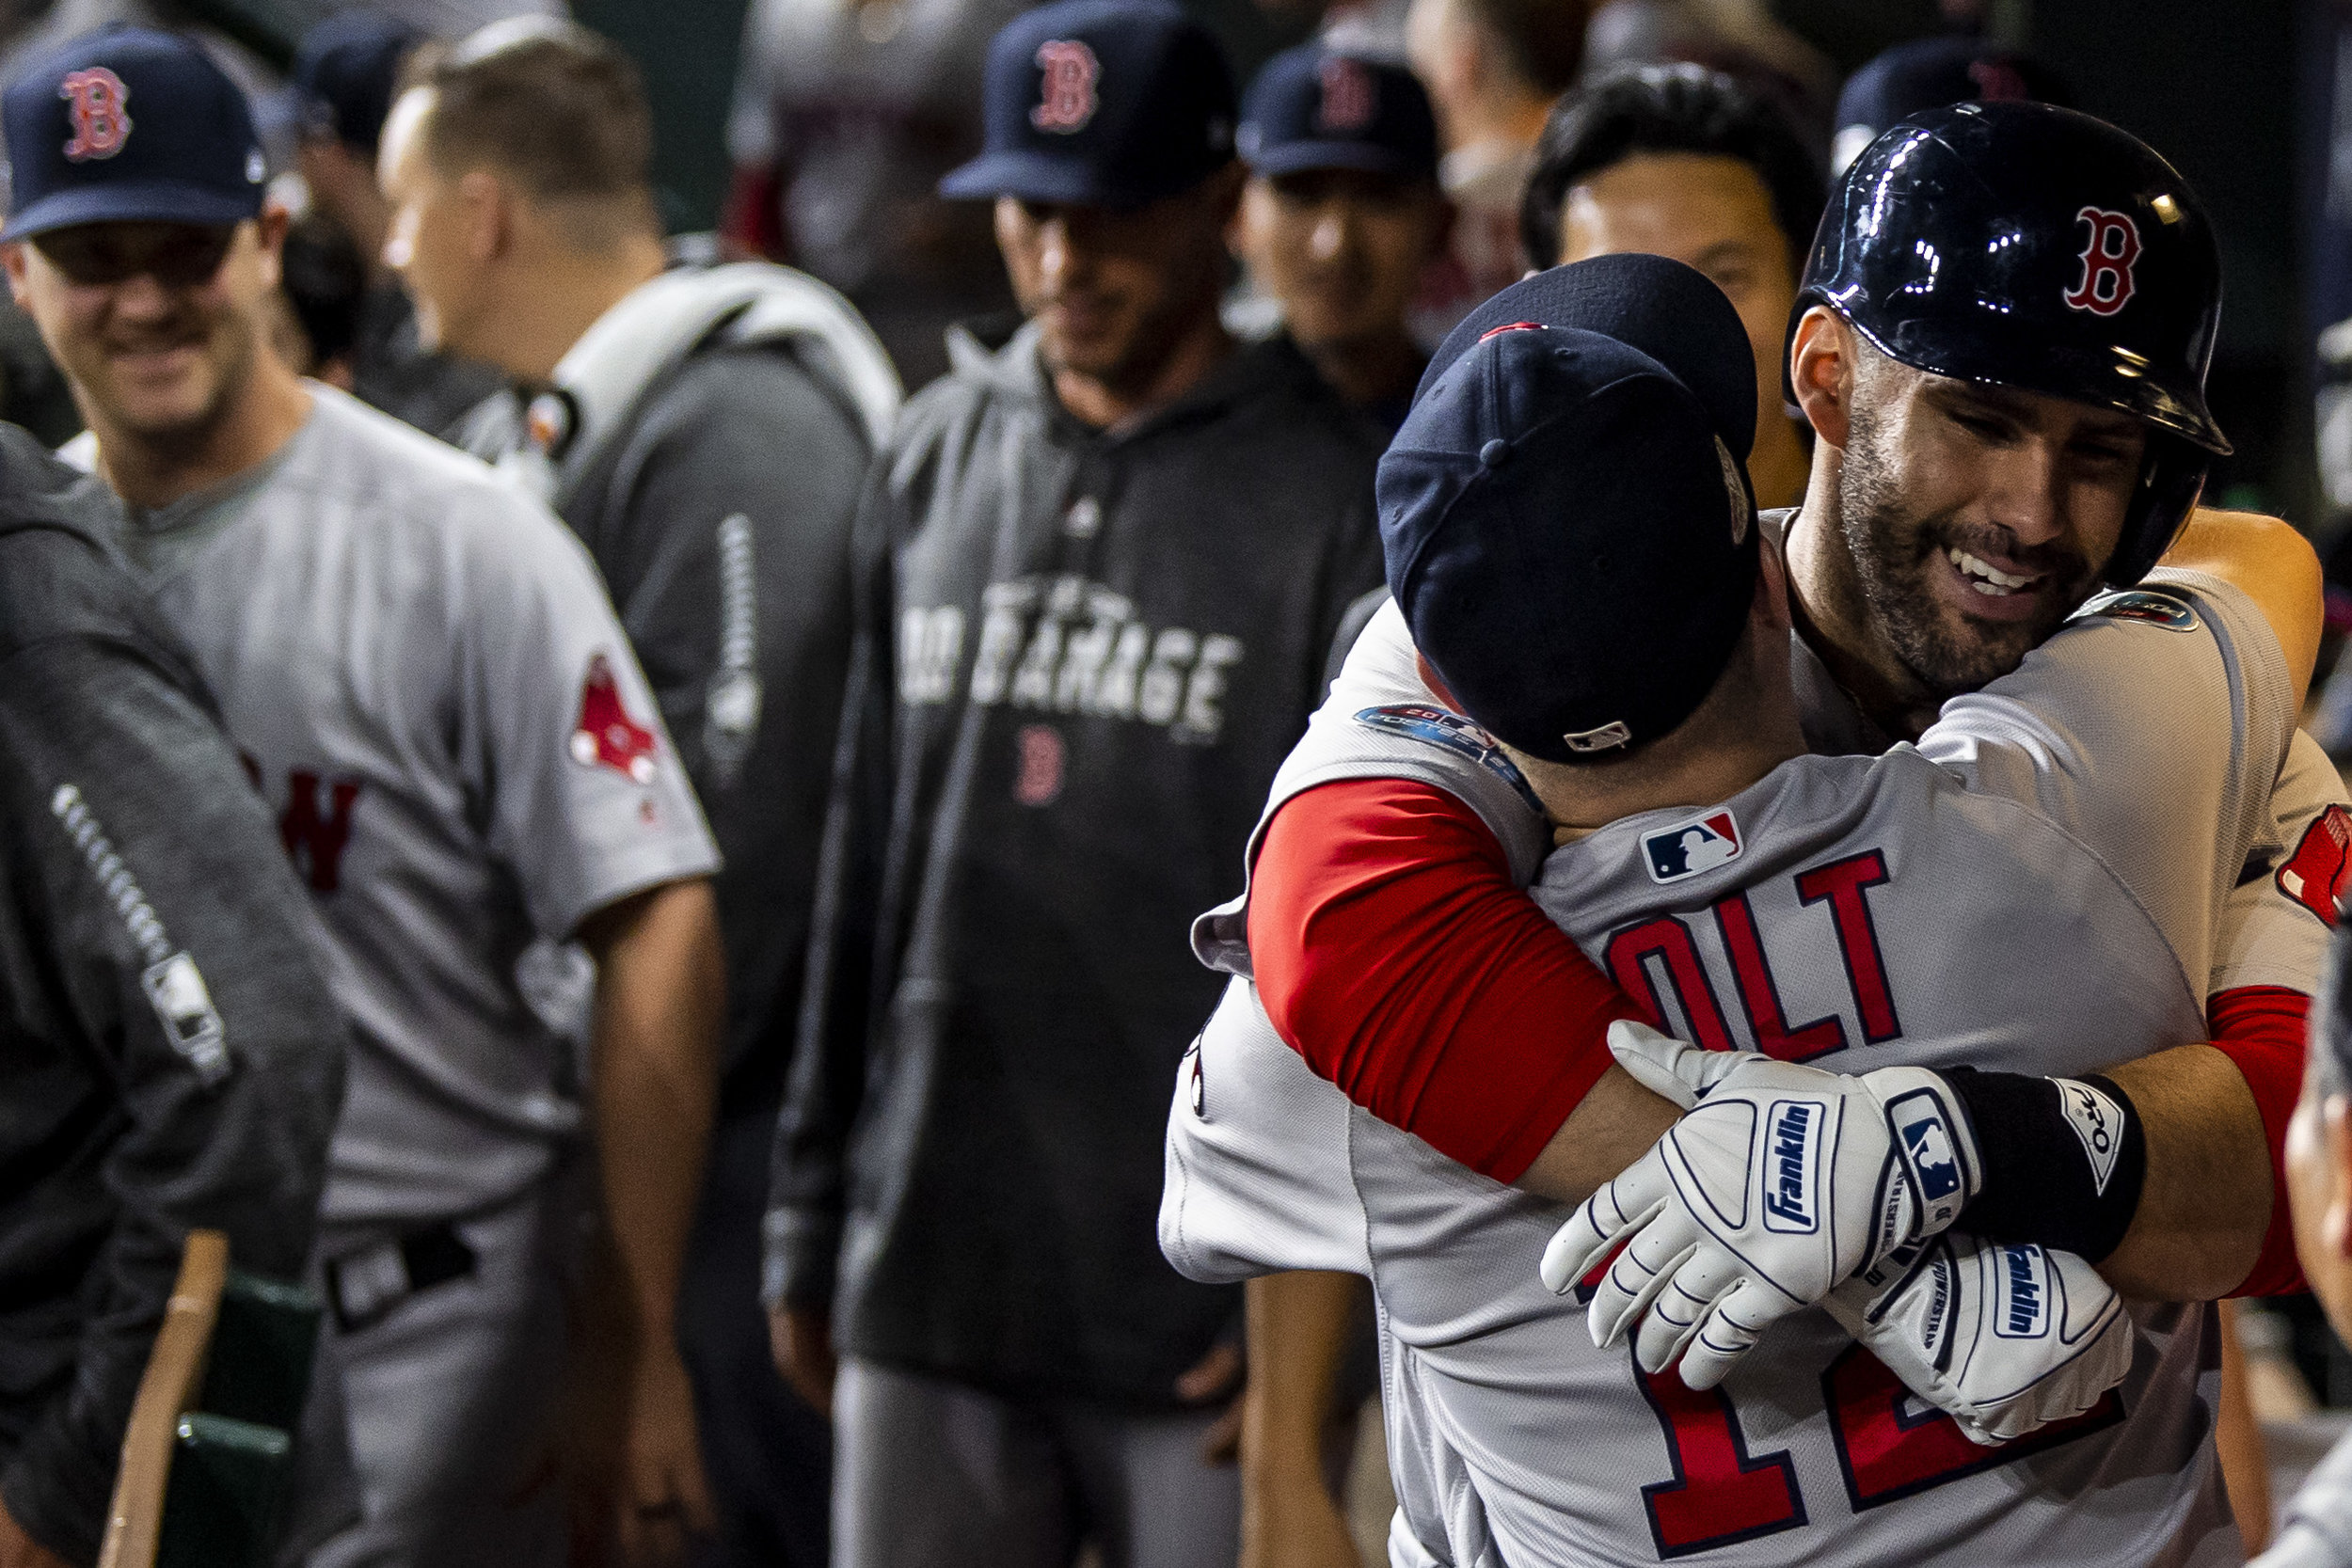 October 18, 2018, Houston, TX: Boston Red Sox outfielder J.D. Martinez hugs Boston Red Sox infielder Brock Holt after hitting a home run as the Boston Red Sox face the Houston Astros in Game 5 of the ALCS at Minute Maid Park in Houston, Texas on Thursday, October 18, 2018. (Photo by Matthew Thomas/Boston Red Sox)